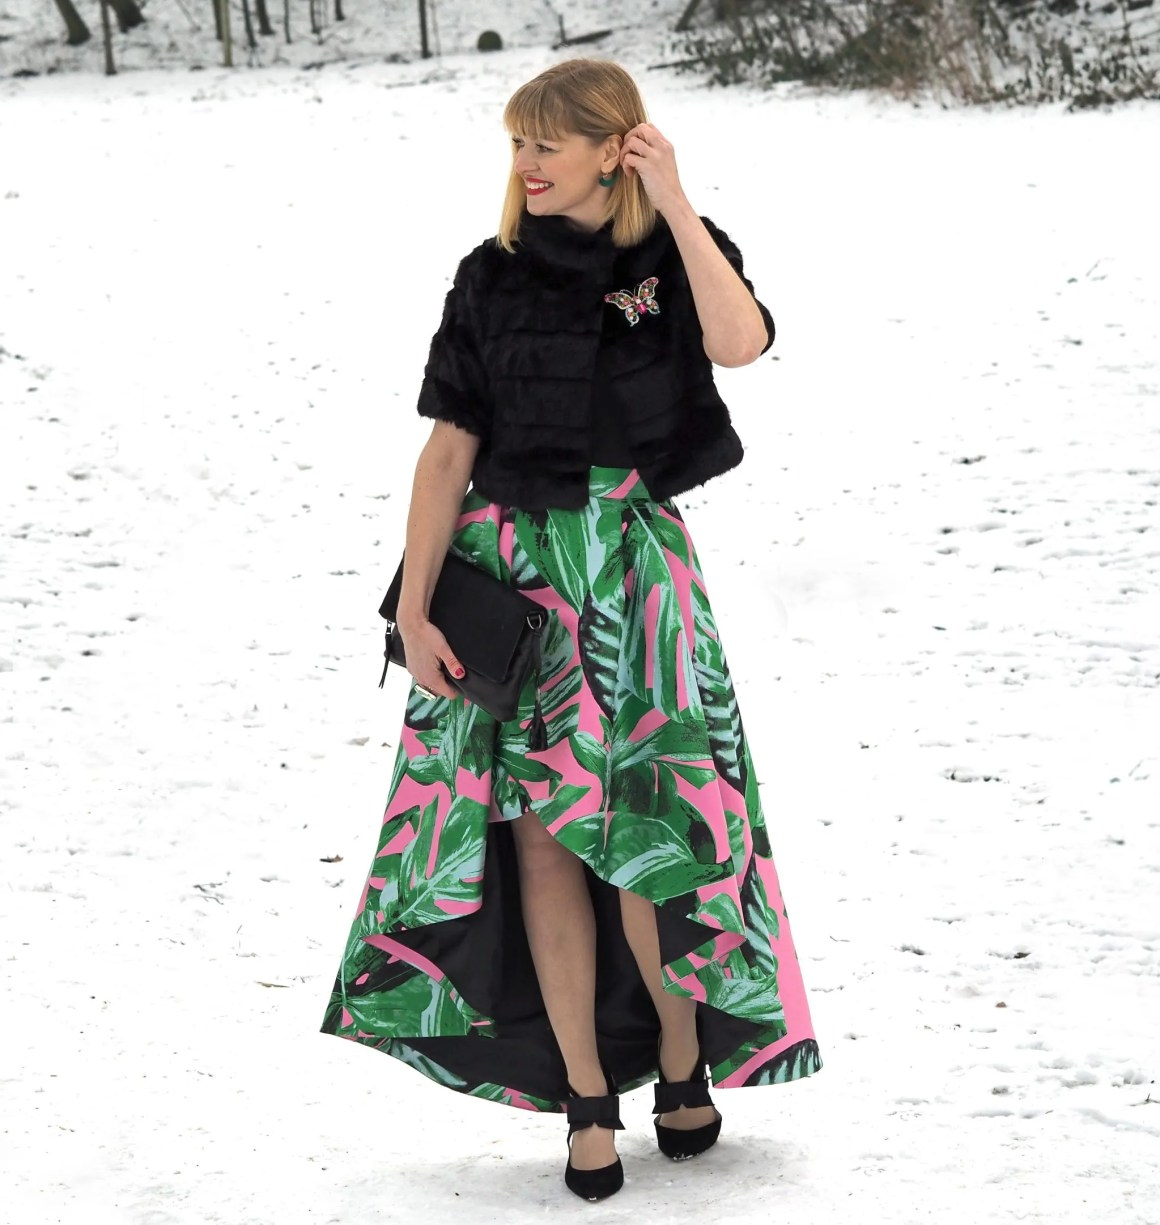 what-lizzy-loves-green-pink-party-skirt-faux-fur-jacket